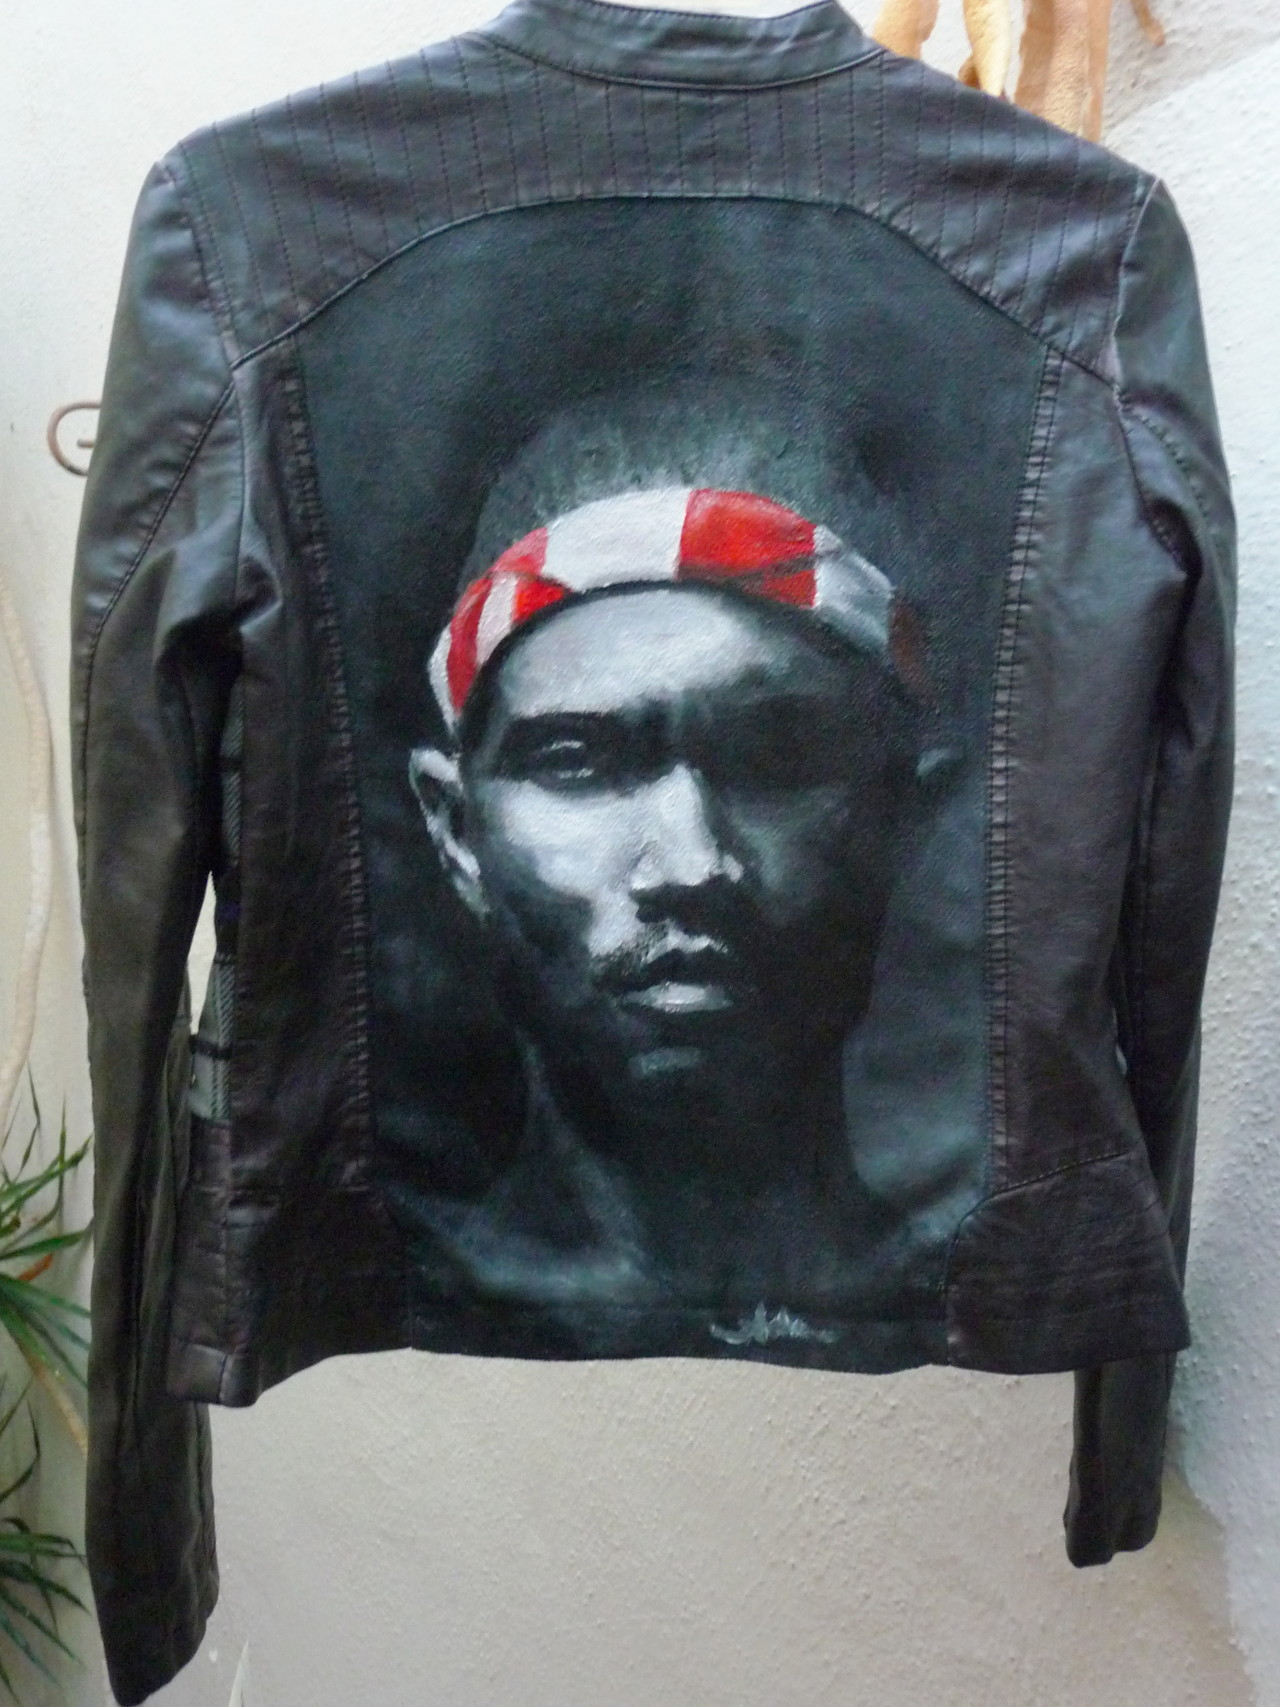 frankoceanitaly:  adondichenita:  i bought a $10 leather jacket from Macy's with the ugliest plaid back so of course i had to do something about it. handpainted with acrylic  #I Want This!